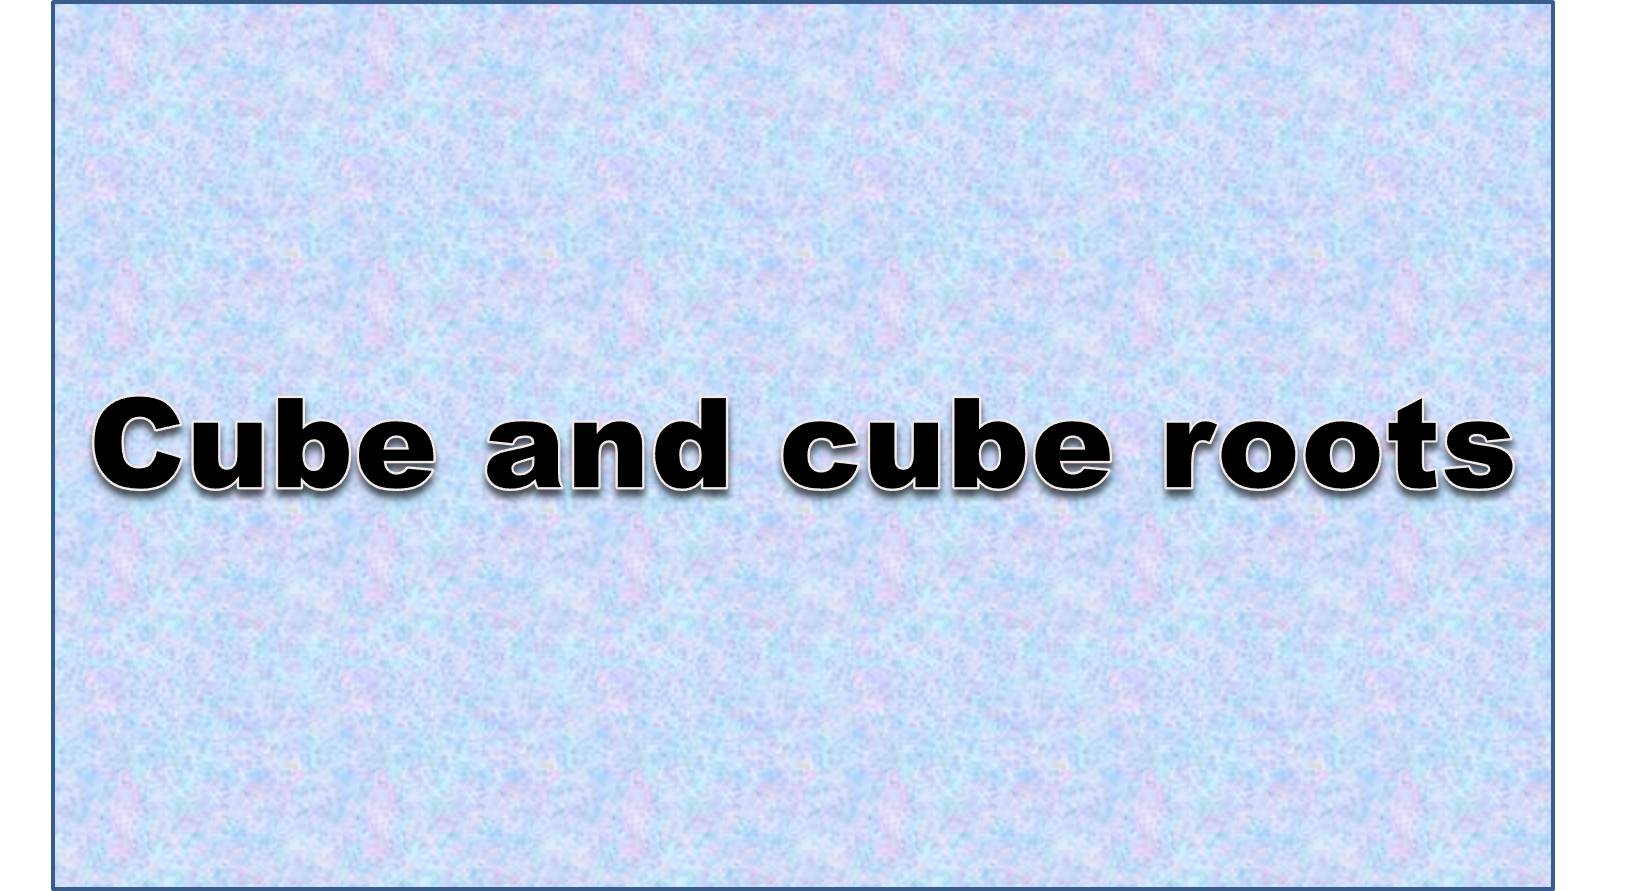 http://study.aisectonline.com/images/Intro to cube roots.jpg